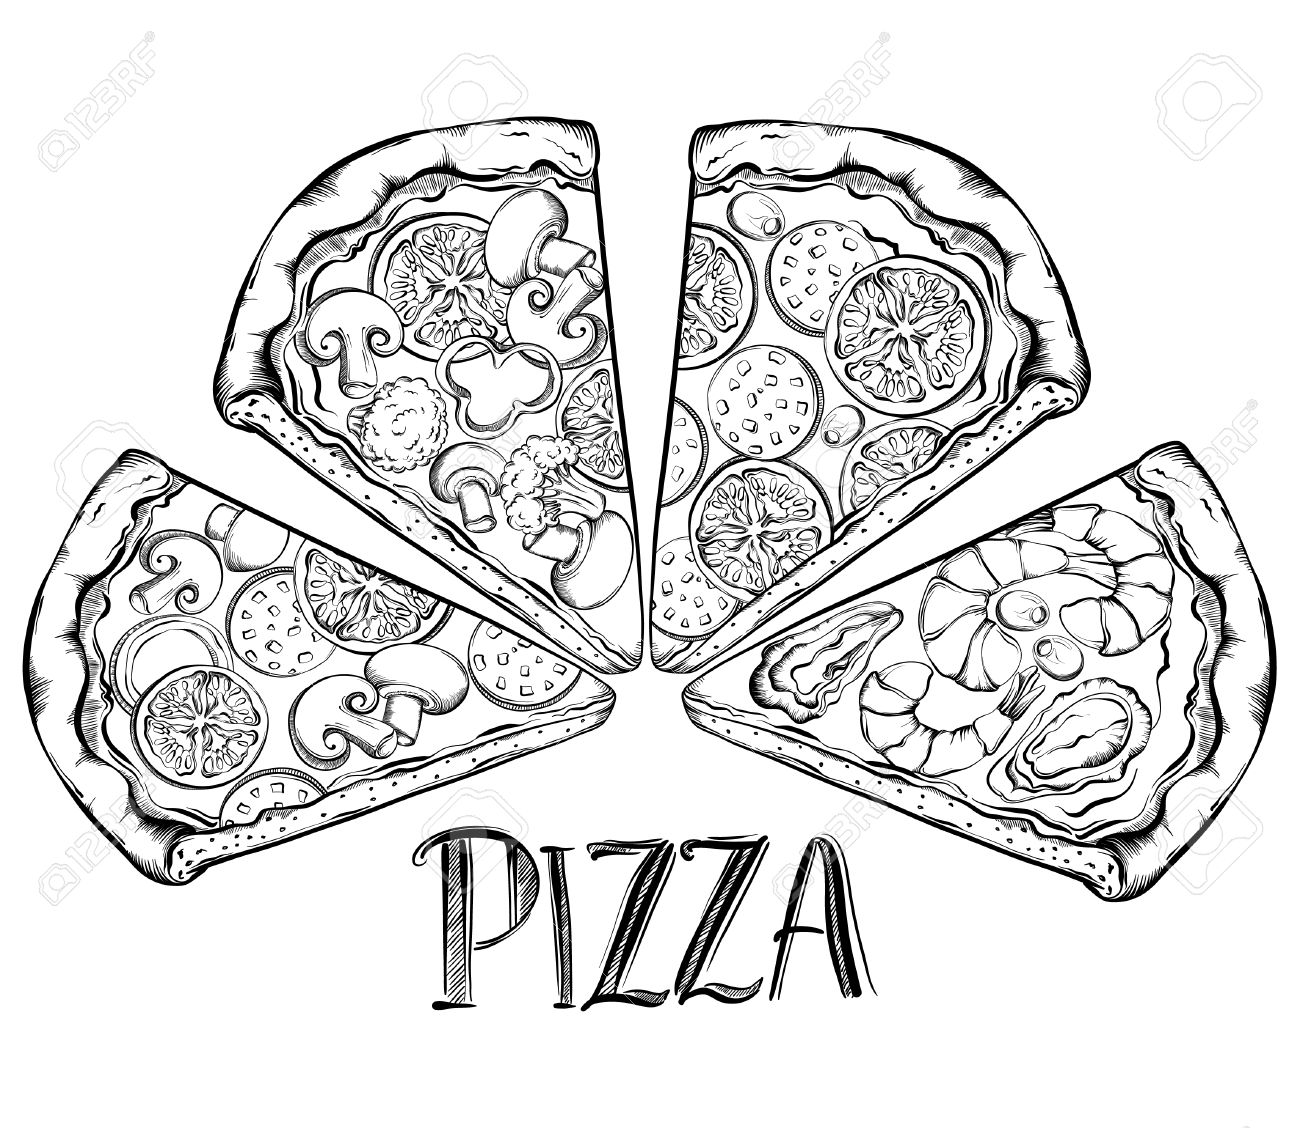 Poster design drawing - Poster With Hand Drawn Slice Of Pizza Design A Menu Stylized Drawing Vector Illustration